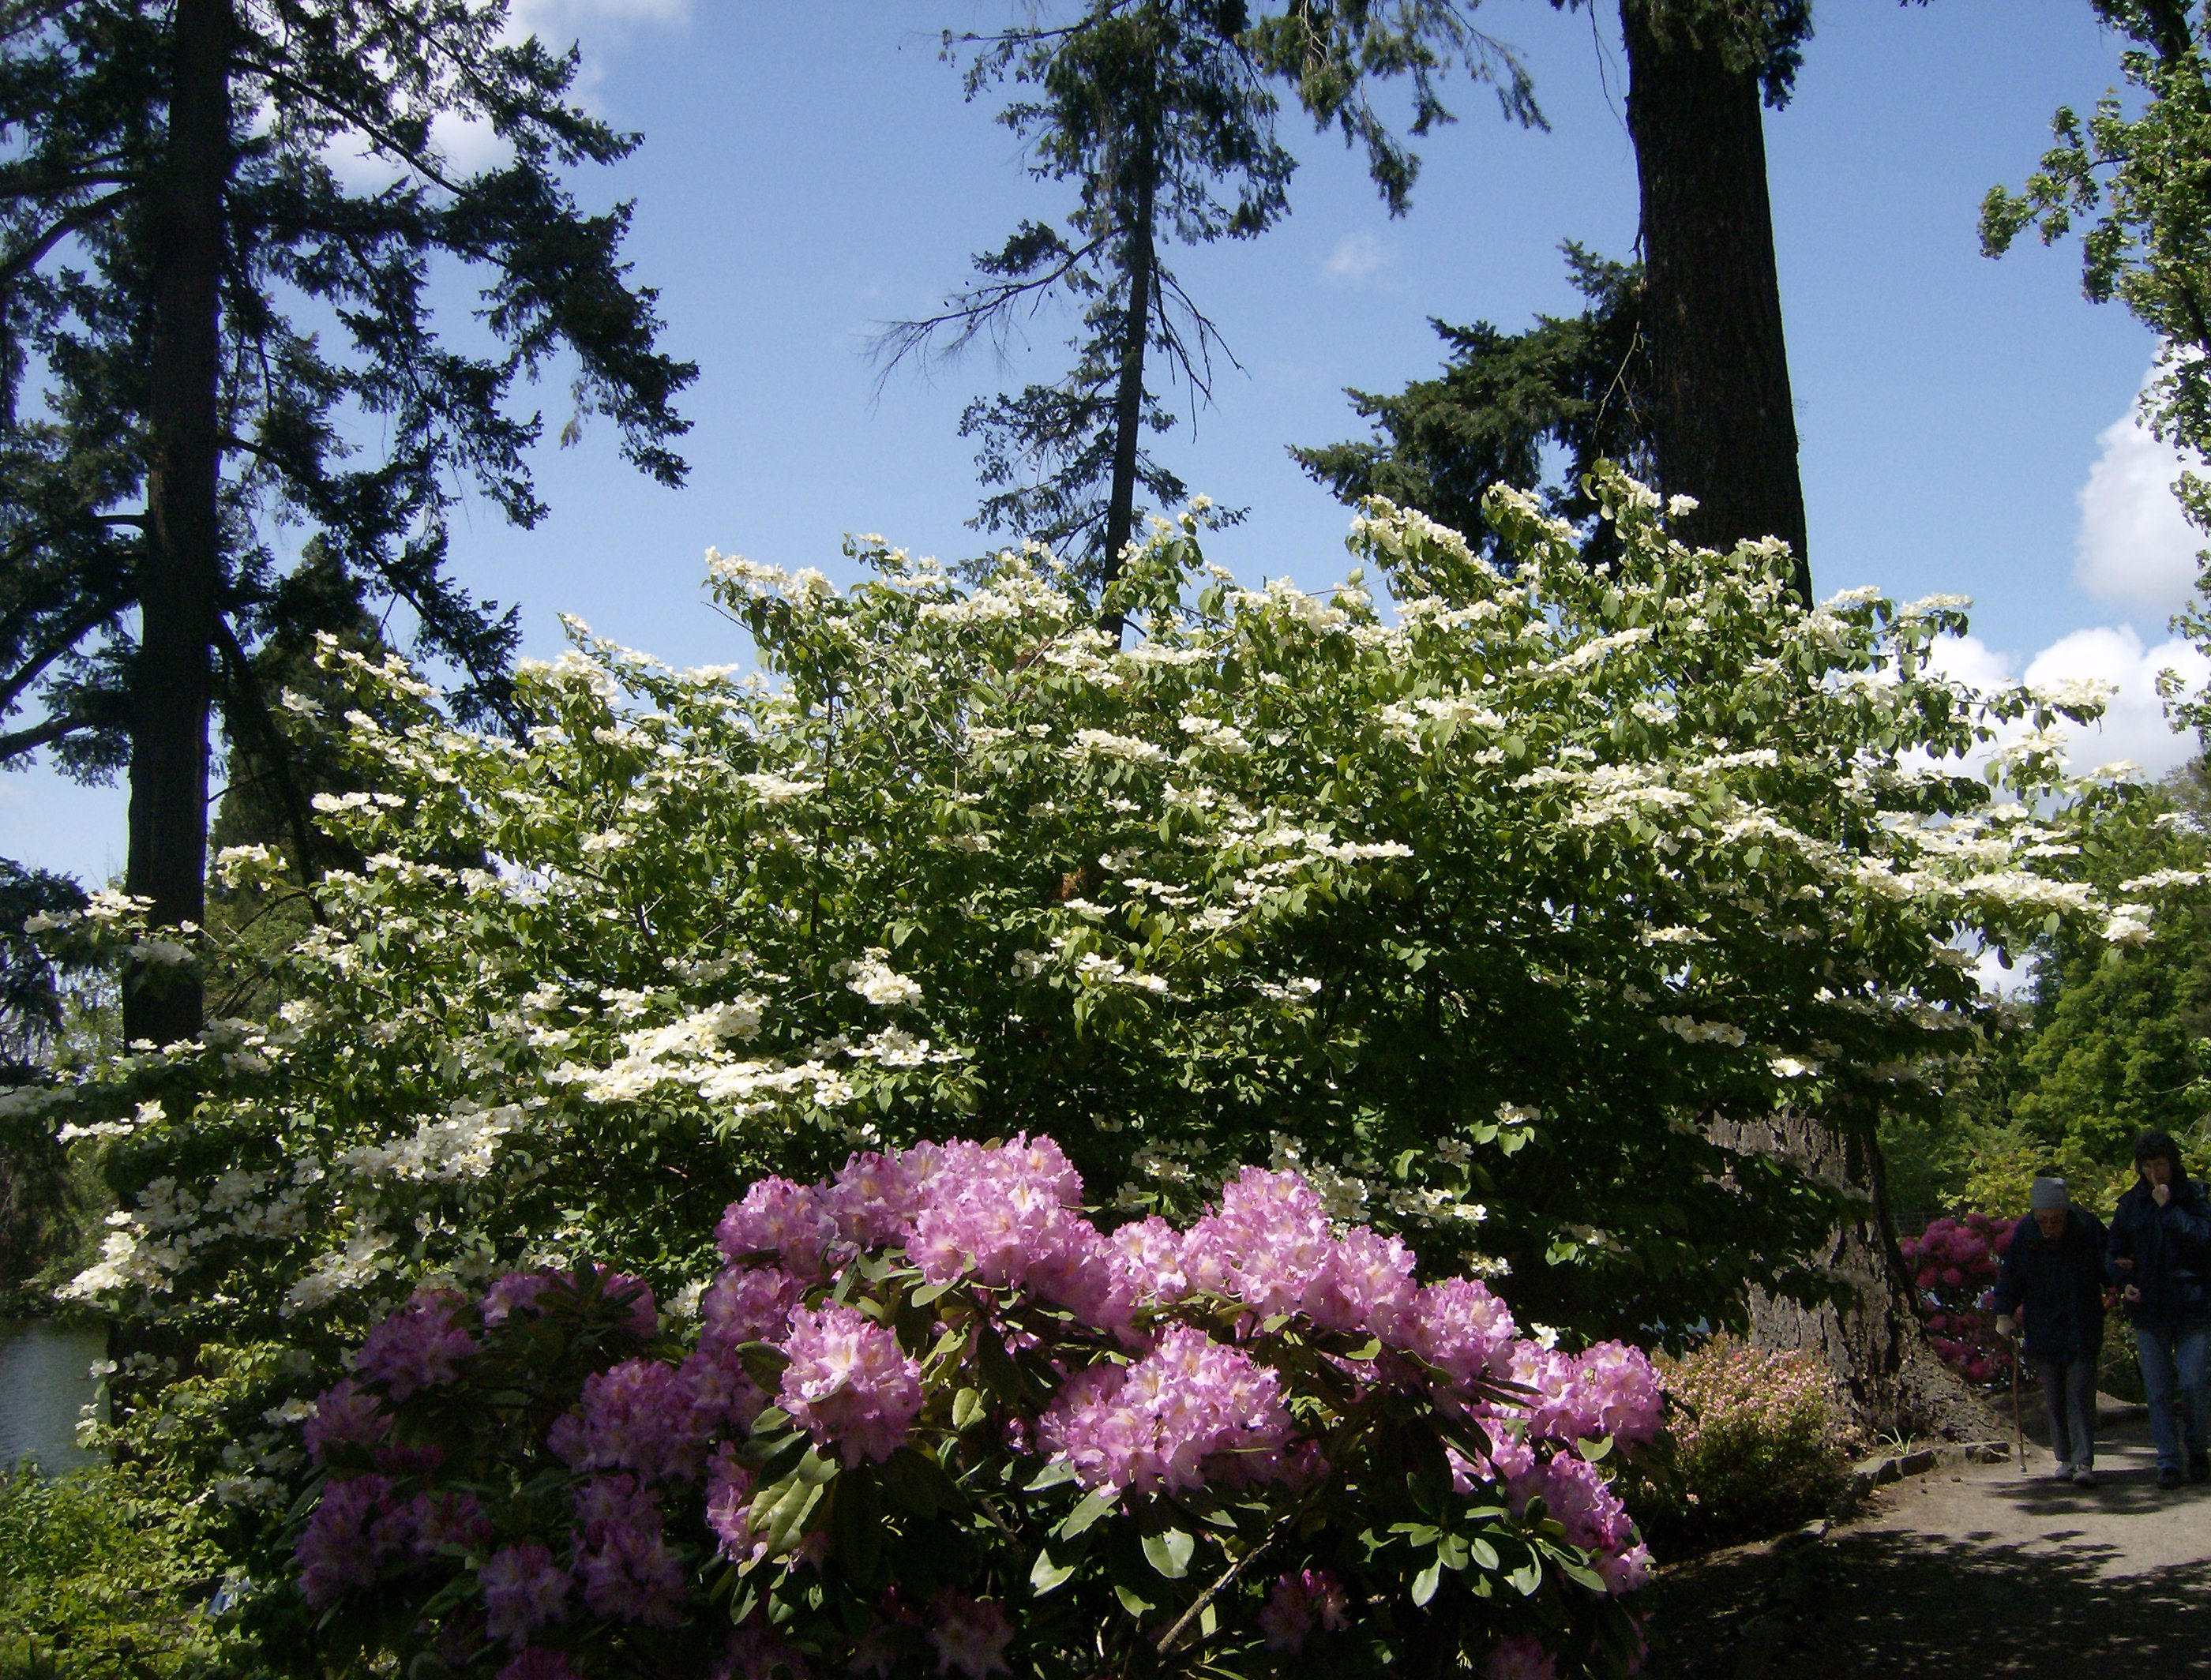 Amazing Rhododendrons – Part 2 of Crystal Springs Rhododendron ...